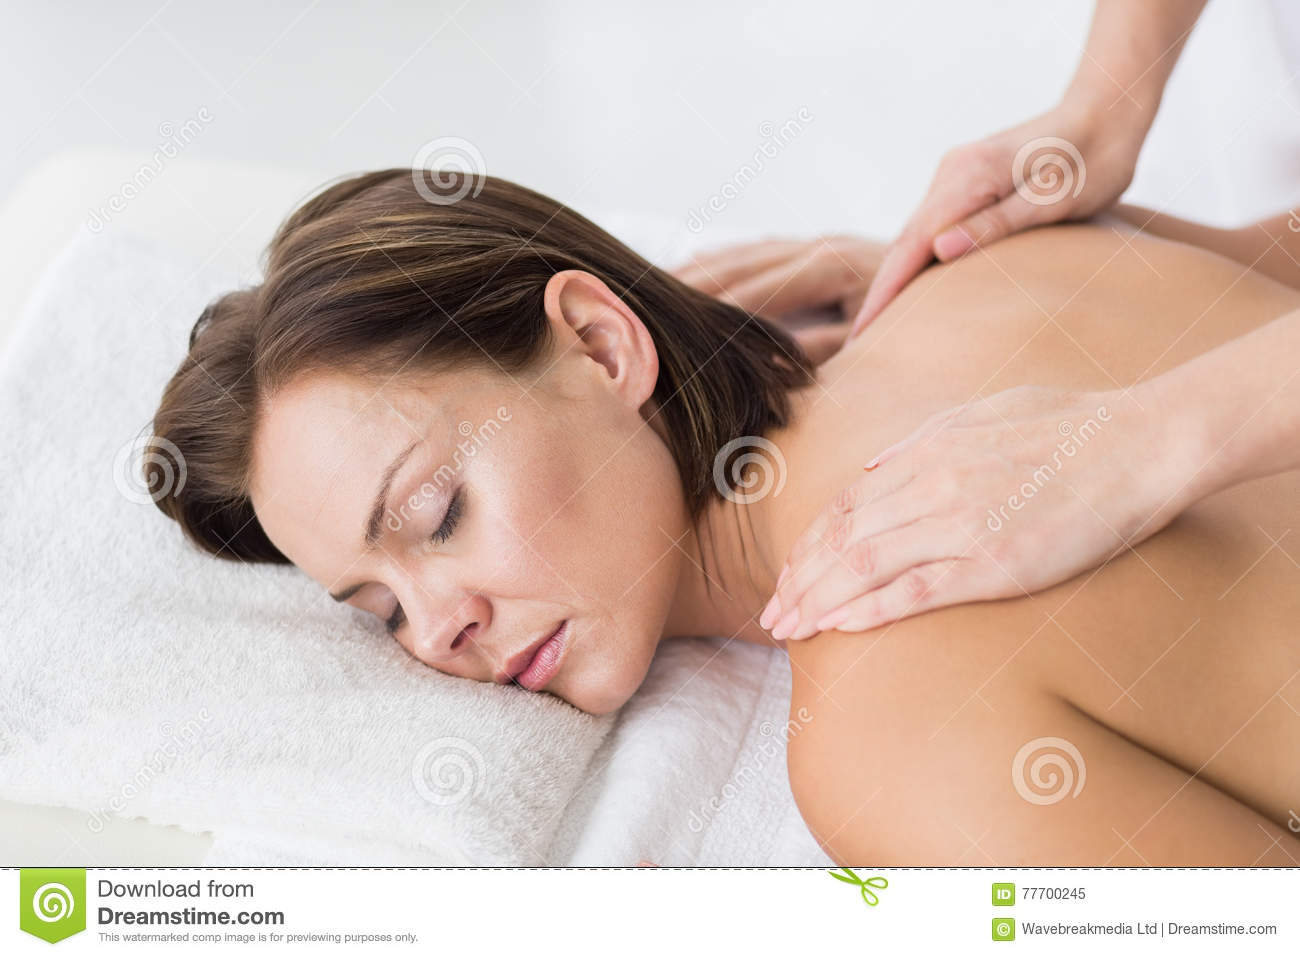 woman on table Naked massage